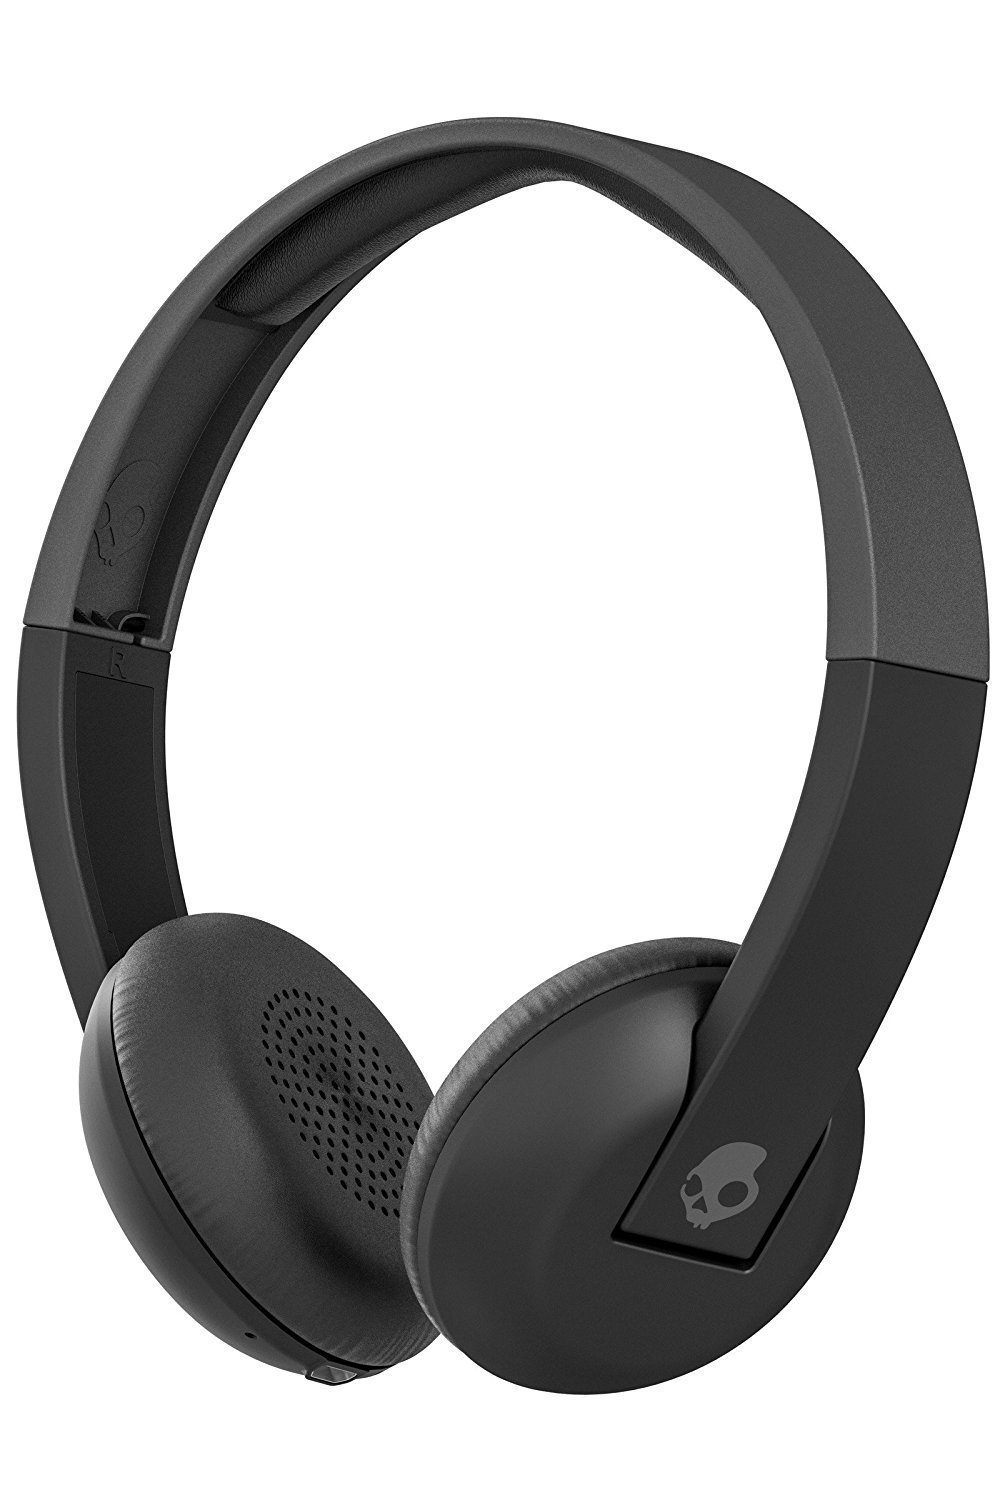 Skullcandy Uproar Bluetooth Wireless On-Ear Headphones with Built-In Microphone and Remote, 10-Hour Rechargeable Battery, Soft Synthetic Leather Ear Pillows for Comfort, Black by Skullcandy